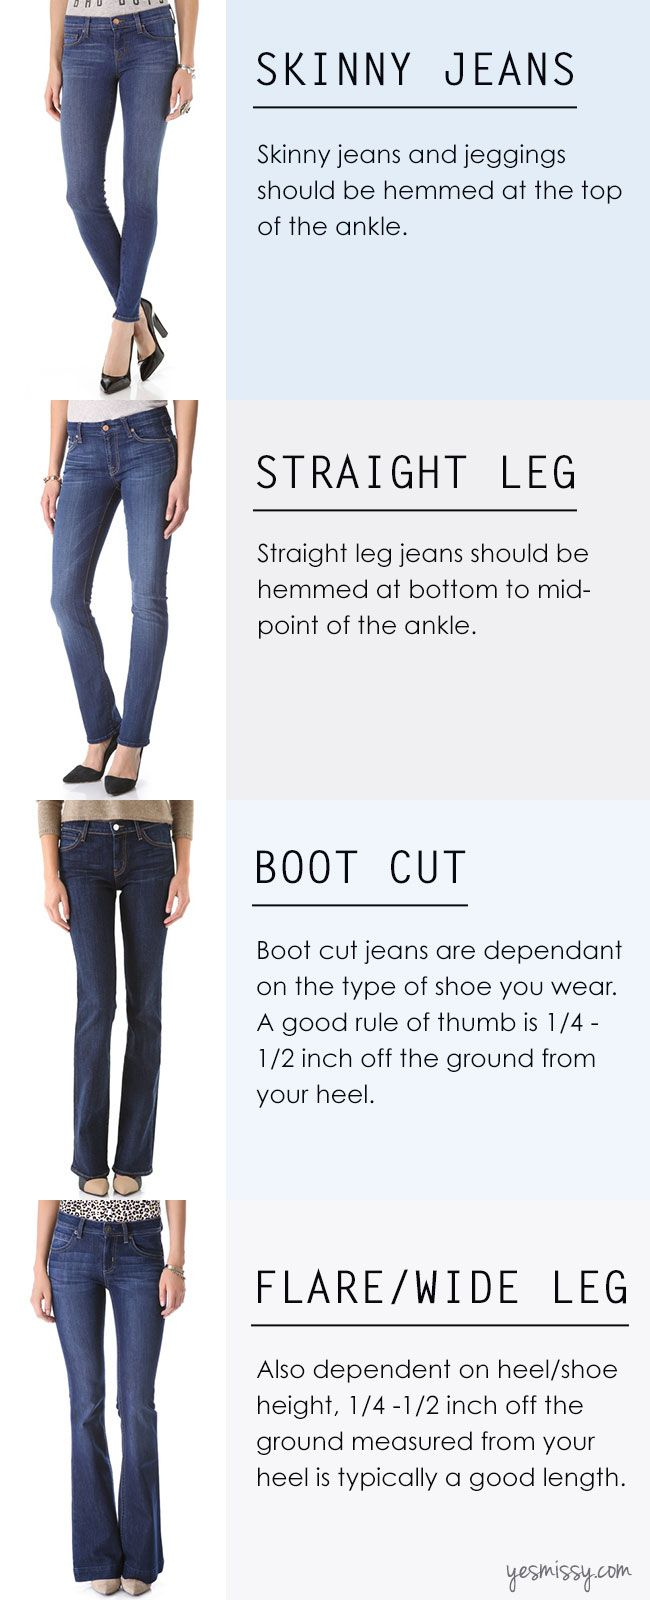 978b699e9a A Complete Guide On How To Hem Jeans - Find the perfect length for any  jeans!